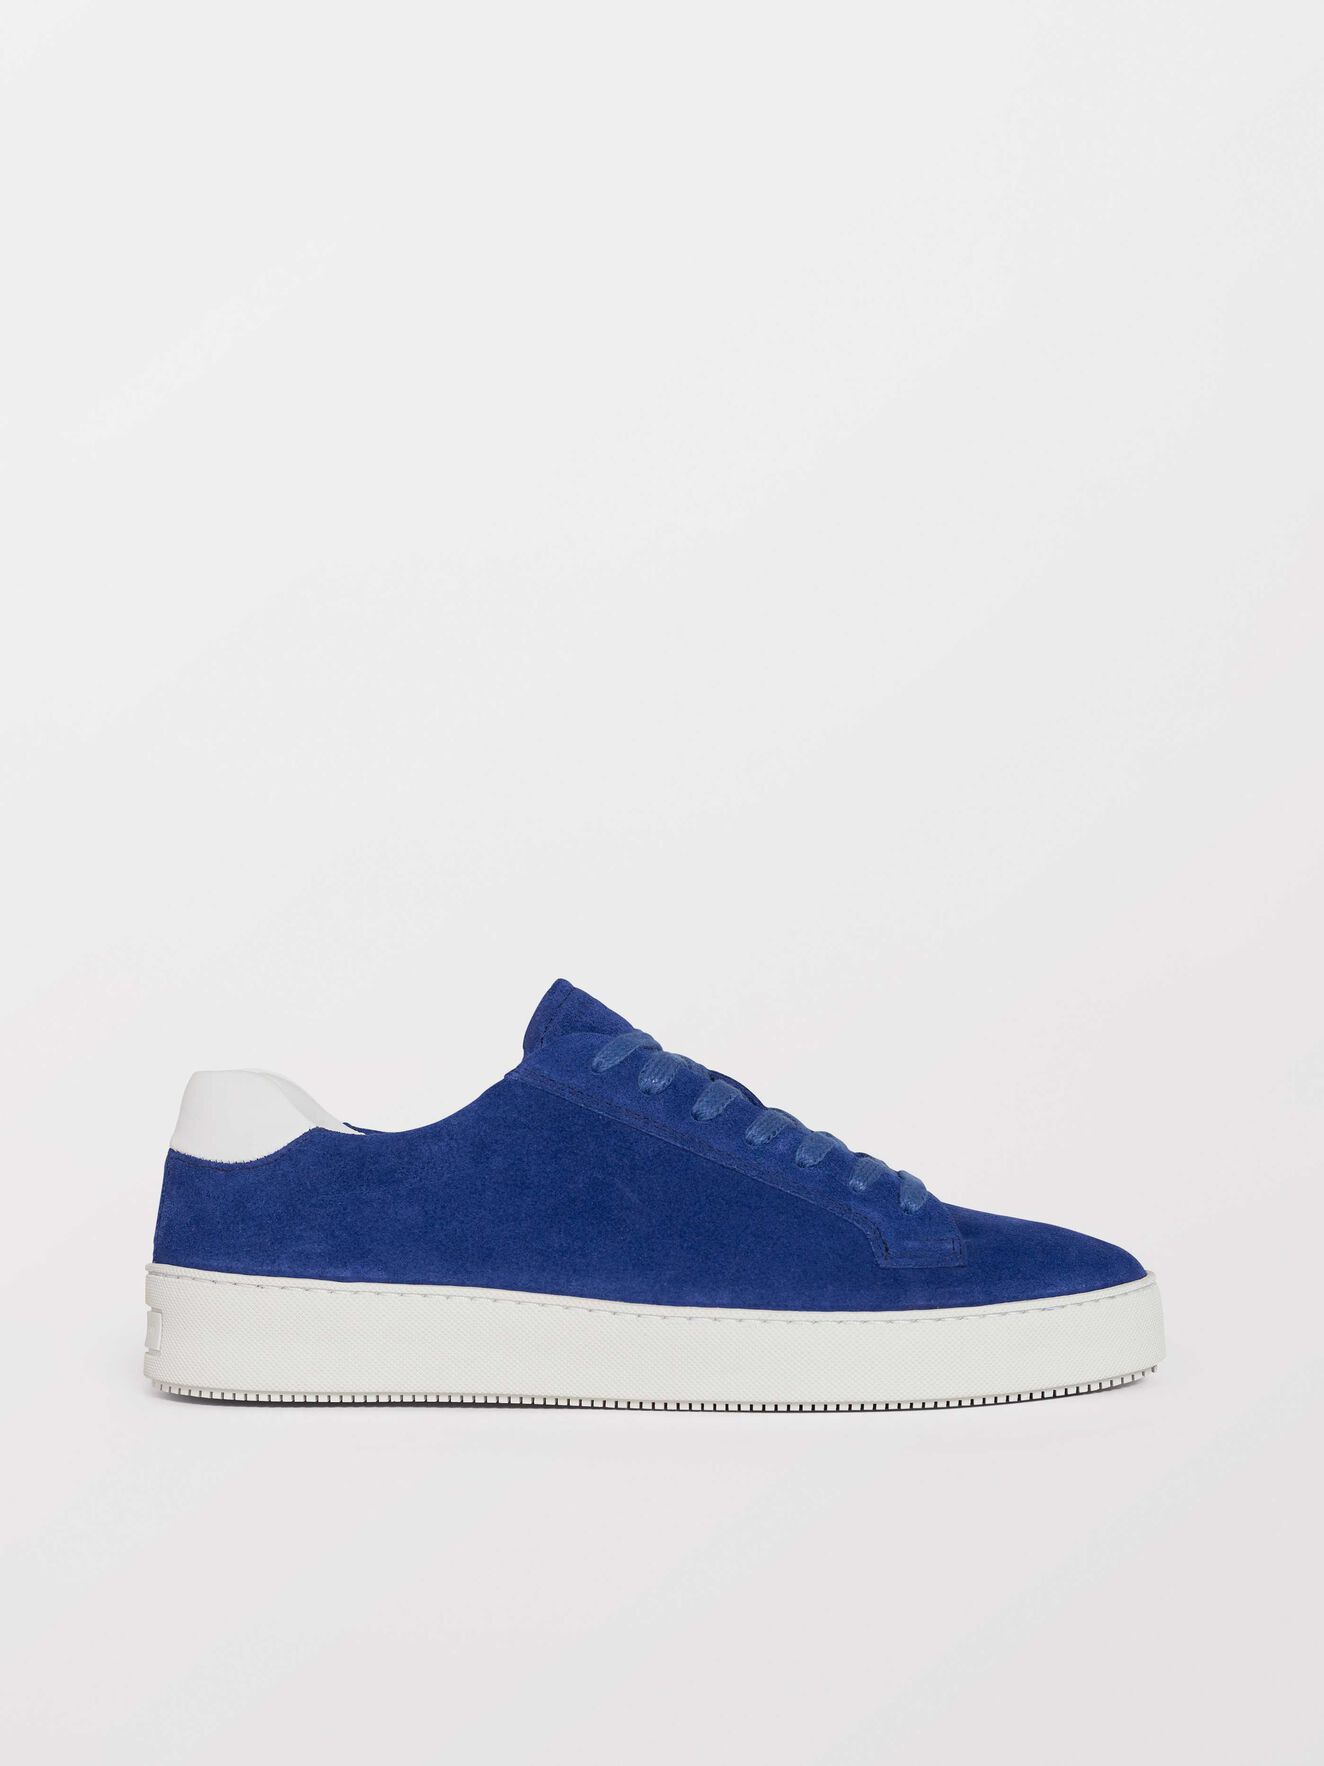 Salasi Sneakers in Deep Ocean Blue from Tiger of Sweden